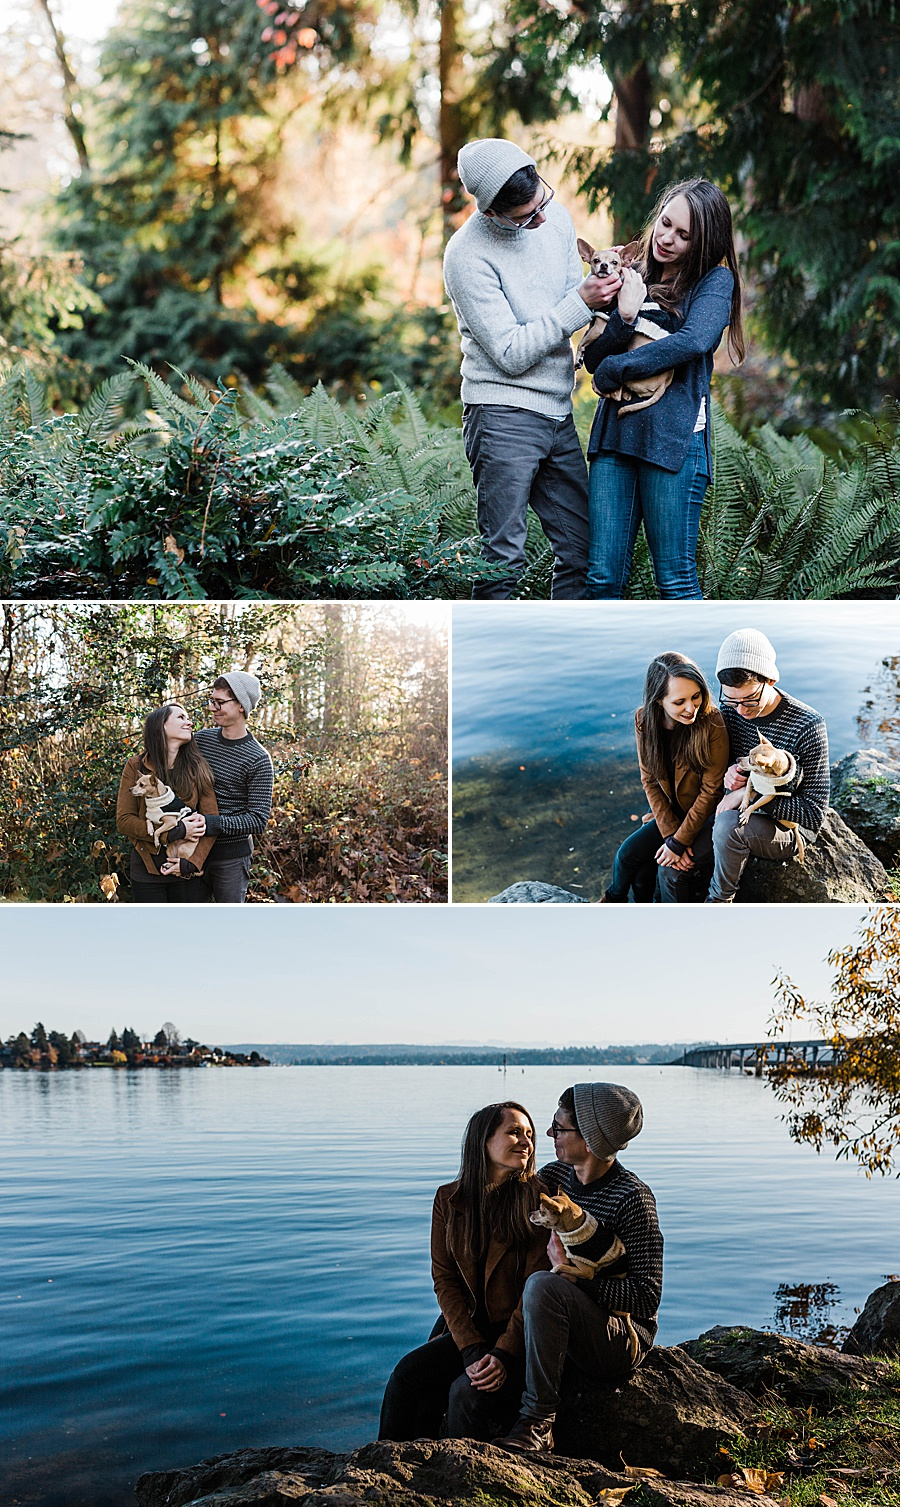 Washington Arboretum Fall Engagement Photos in Seattle by Seattle Wedding Photographer Amy Galbraith